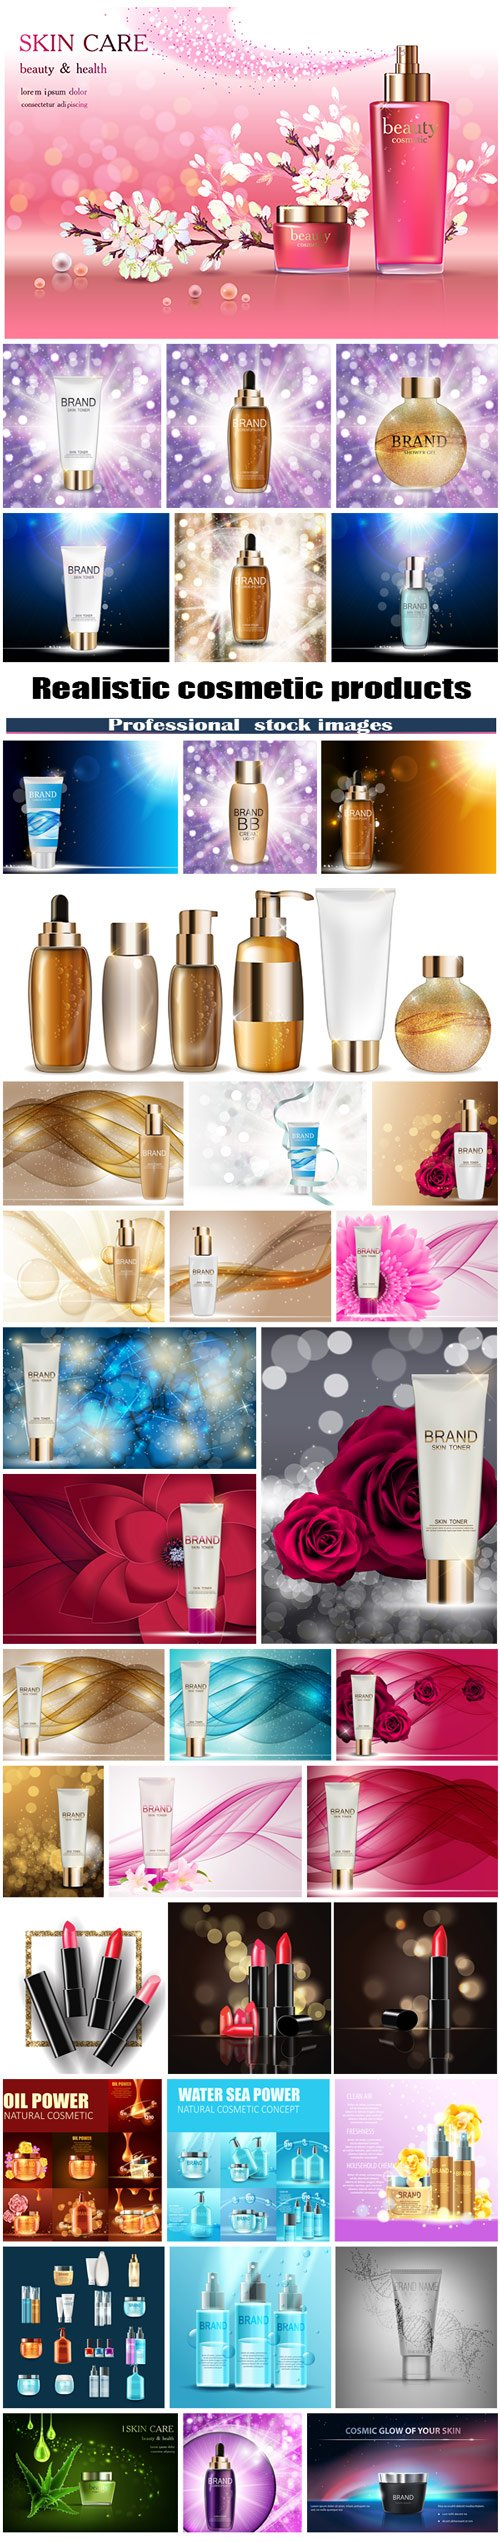 Cosmetics products wallpaper 2017